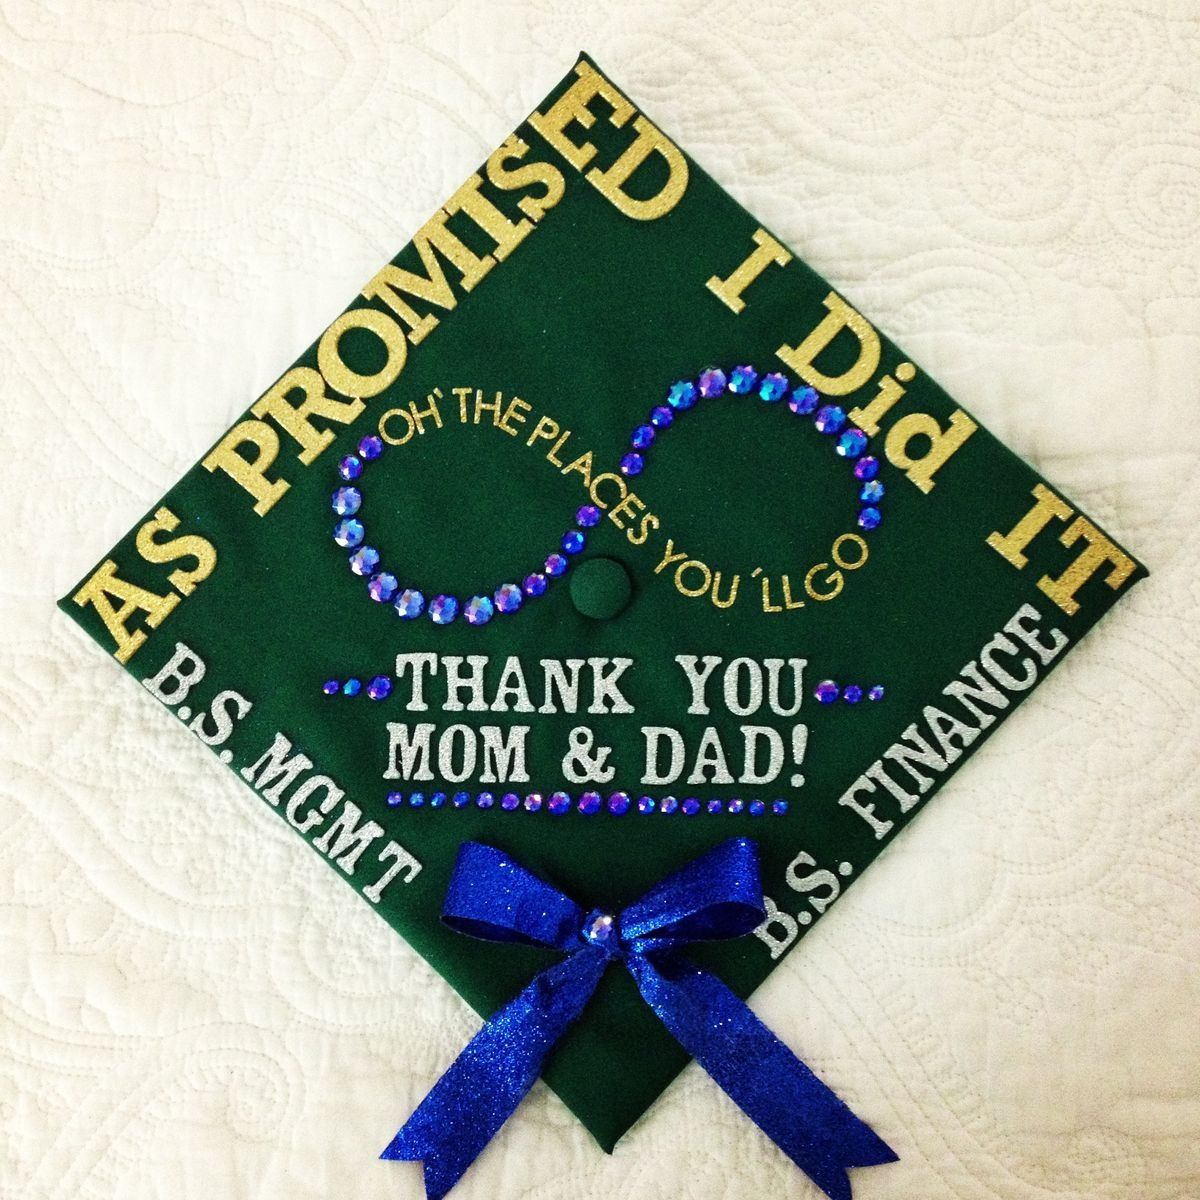 ad2f1b712bd Thank you mom and dad grad cap ideas